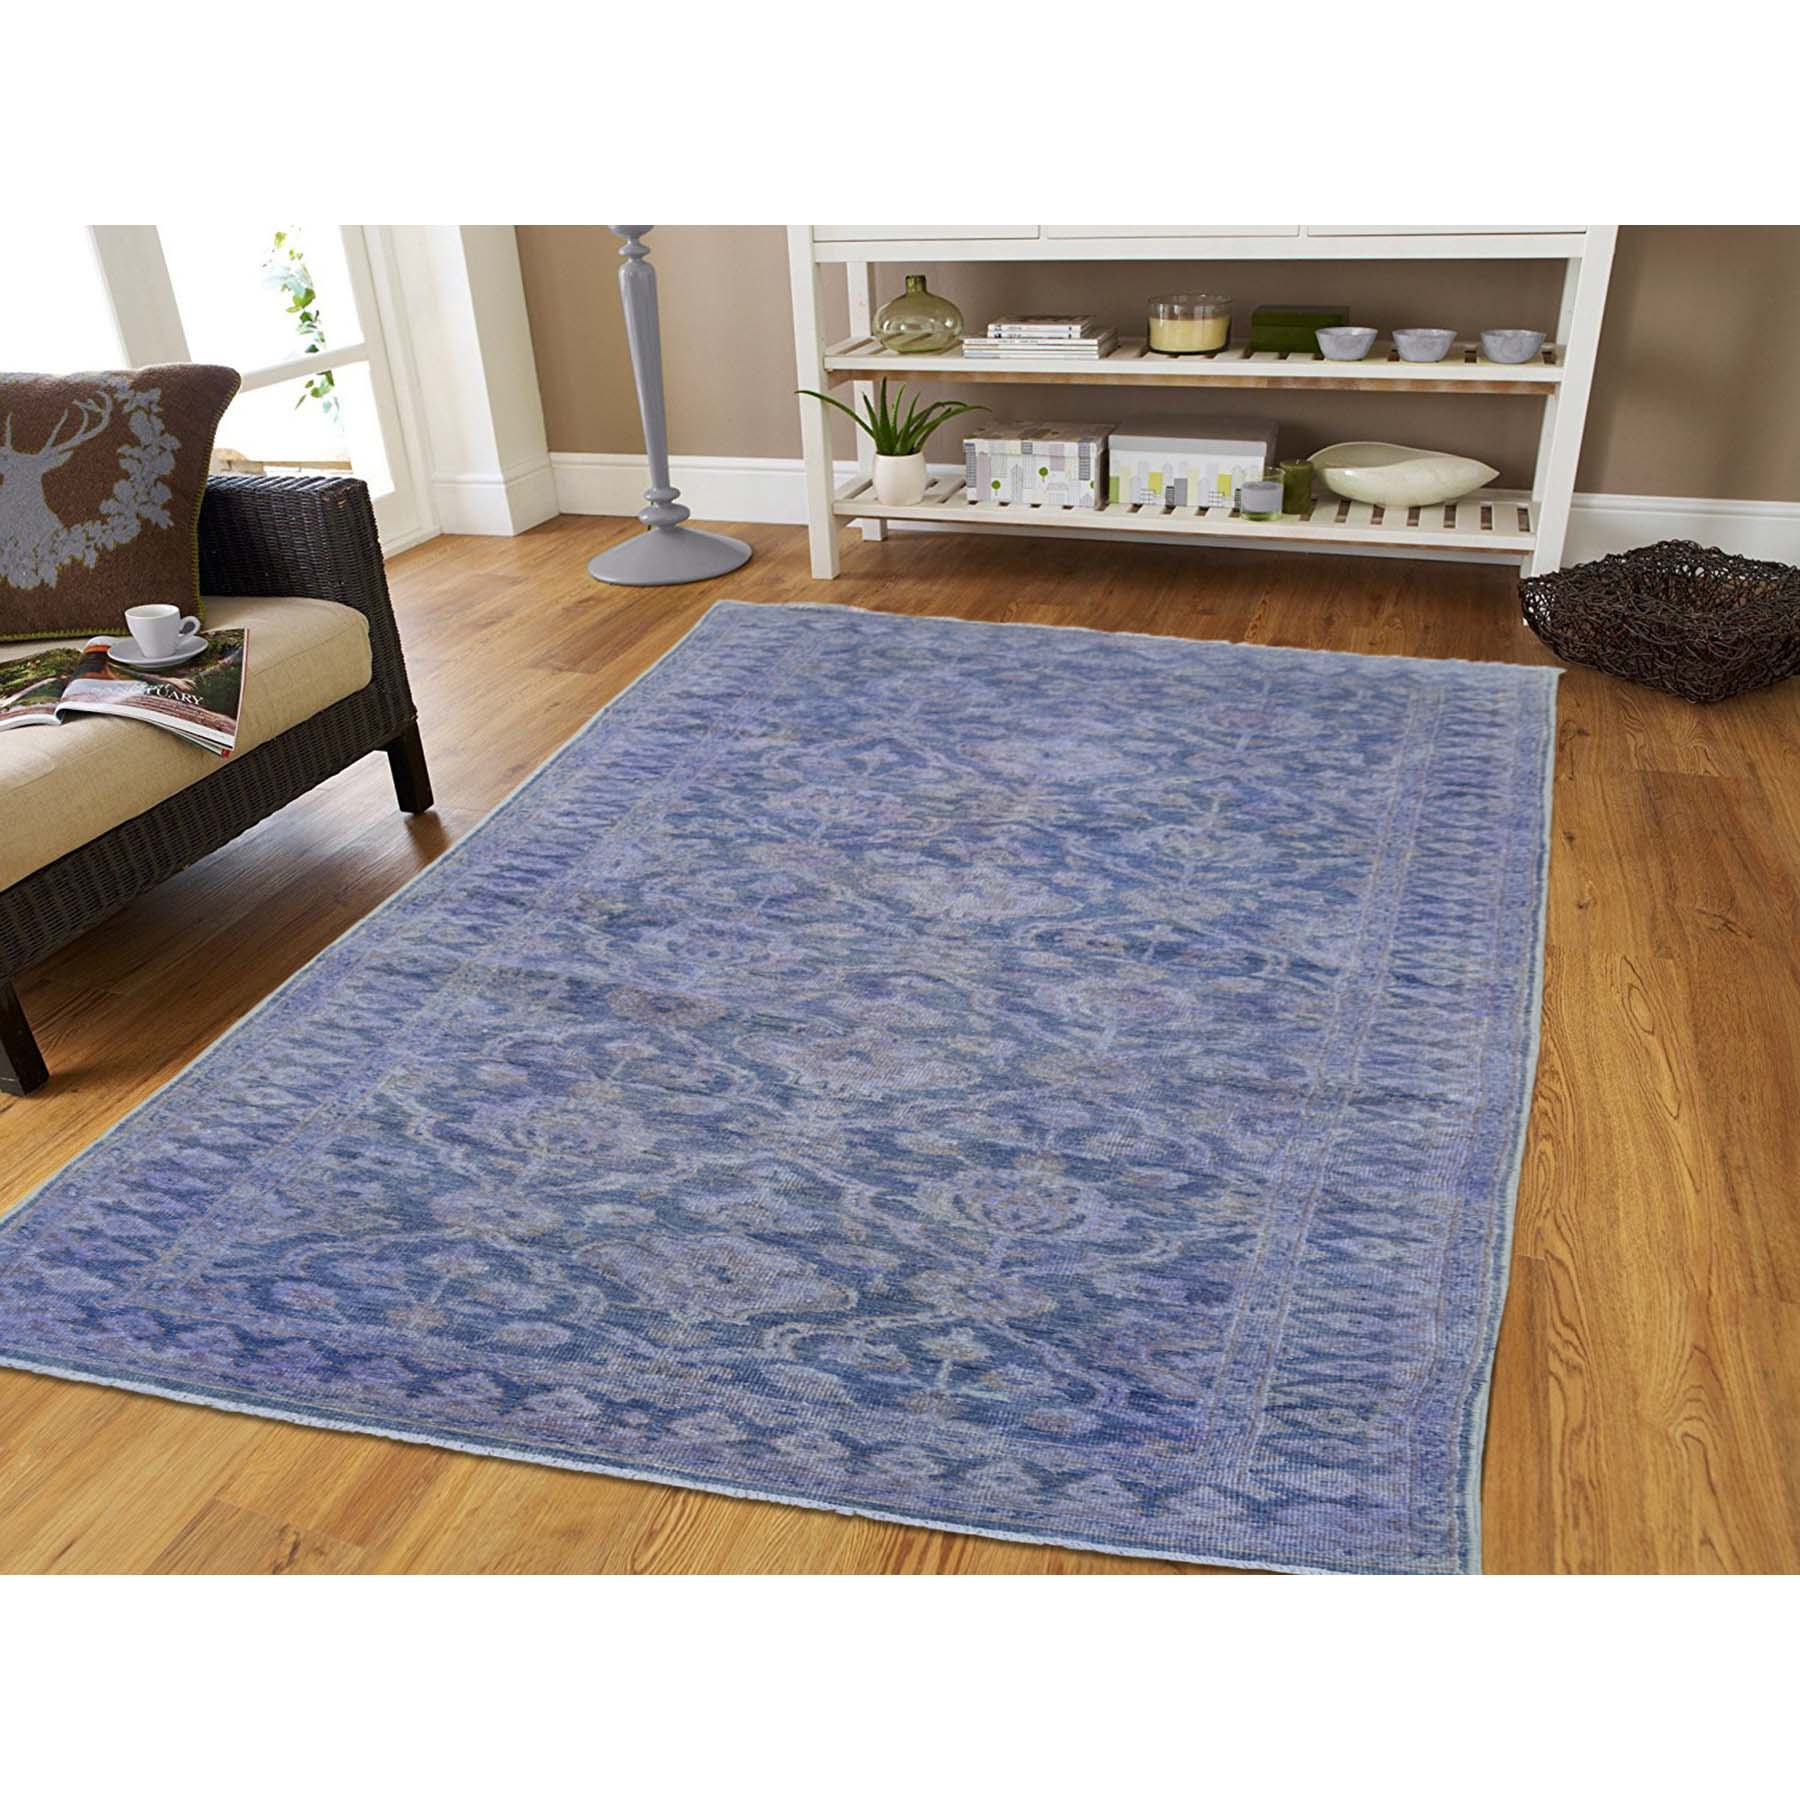 4-1 x11-10  Wide Runner Overdyed Peshawar Hand-Knotted Oriental Rug